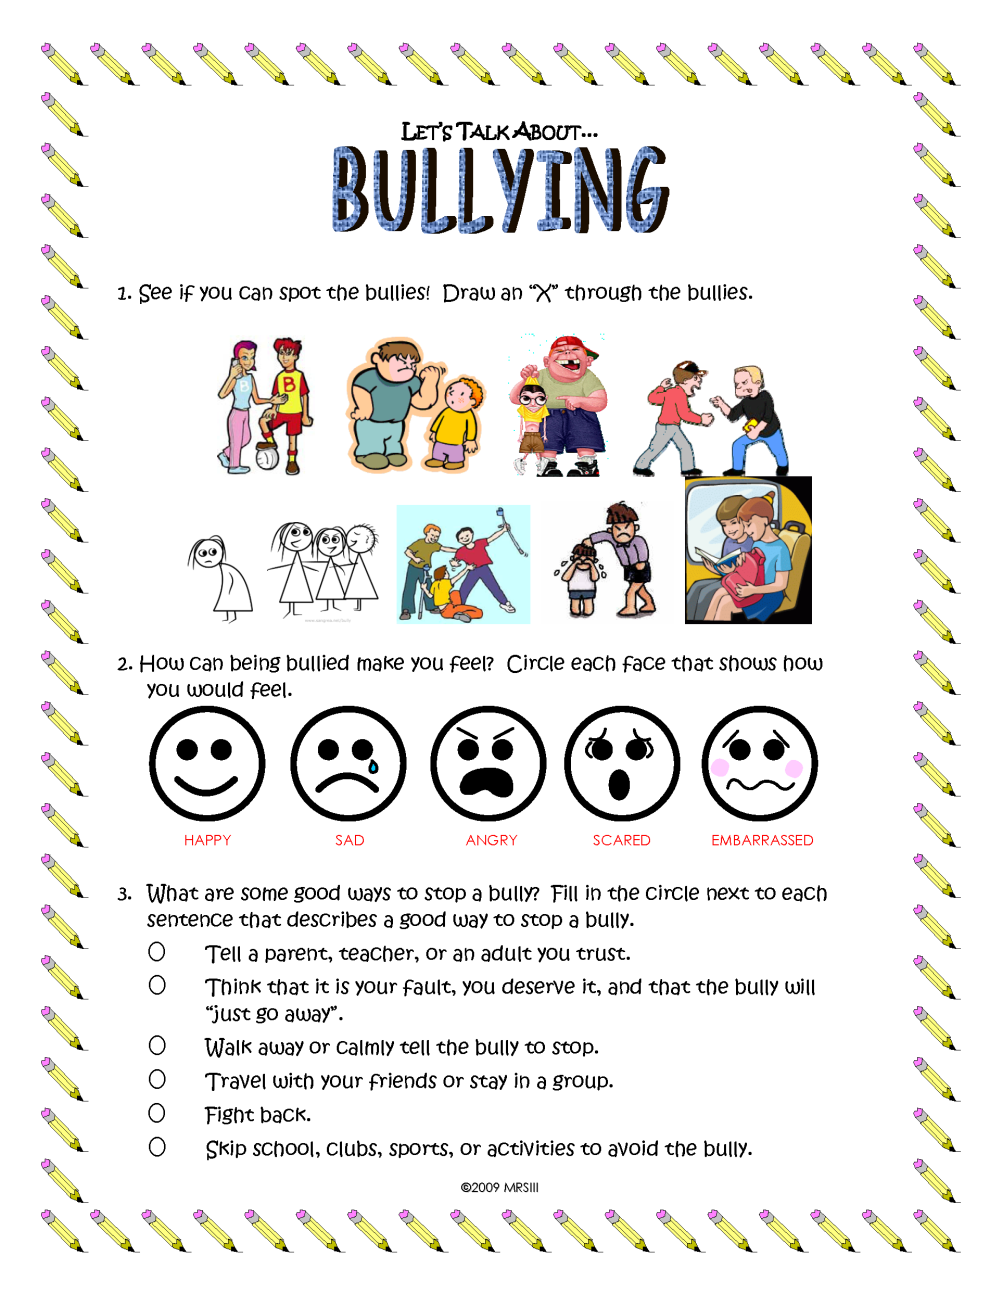 bullying worksheet | Plustheapp